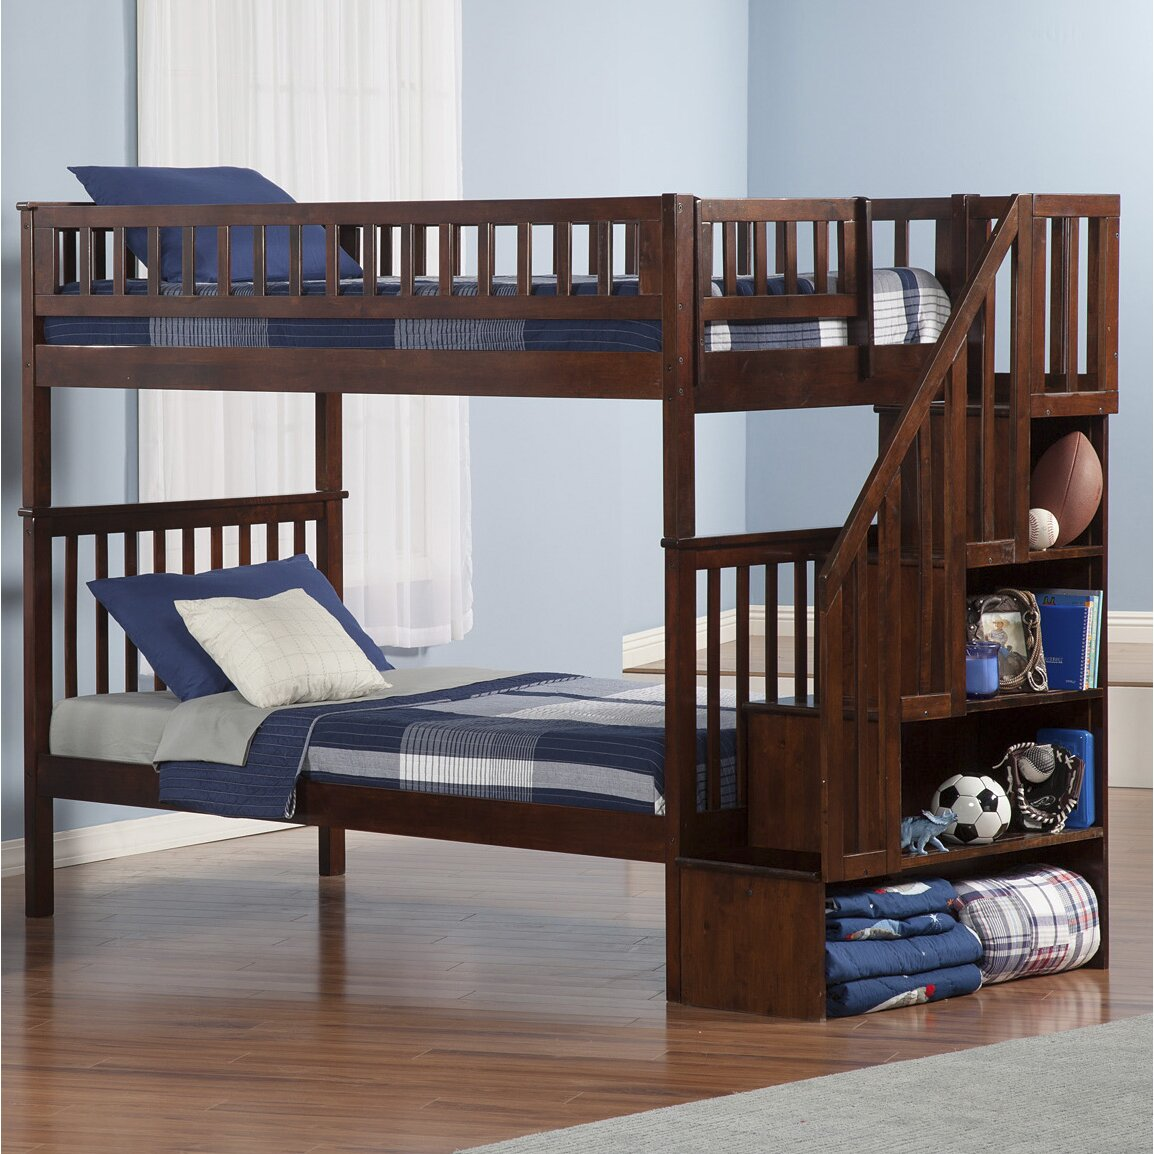 Atlantic Furniture Woodland Twin Bunk Bed Reviews Wayfair